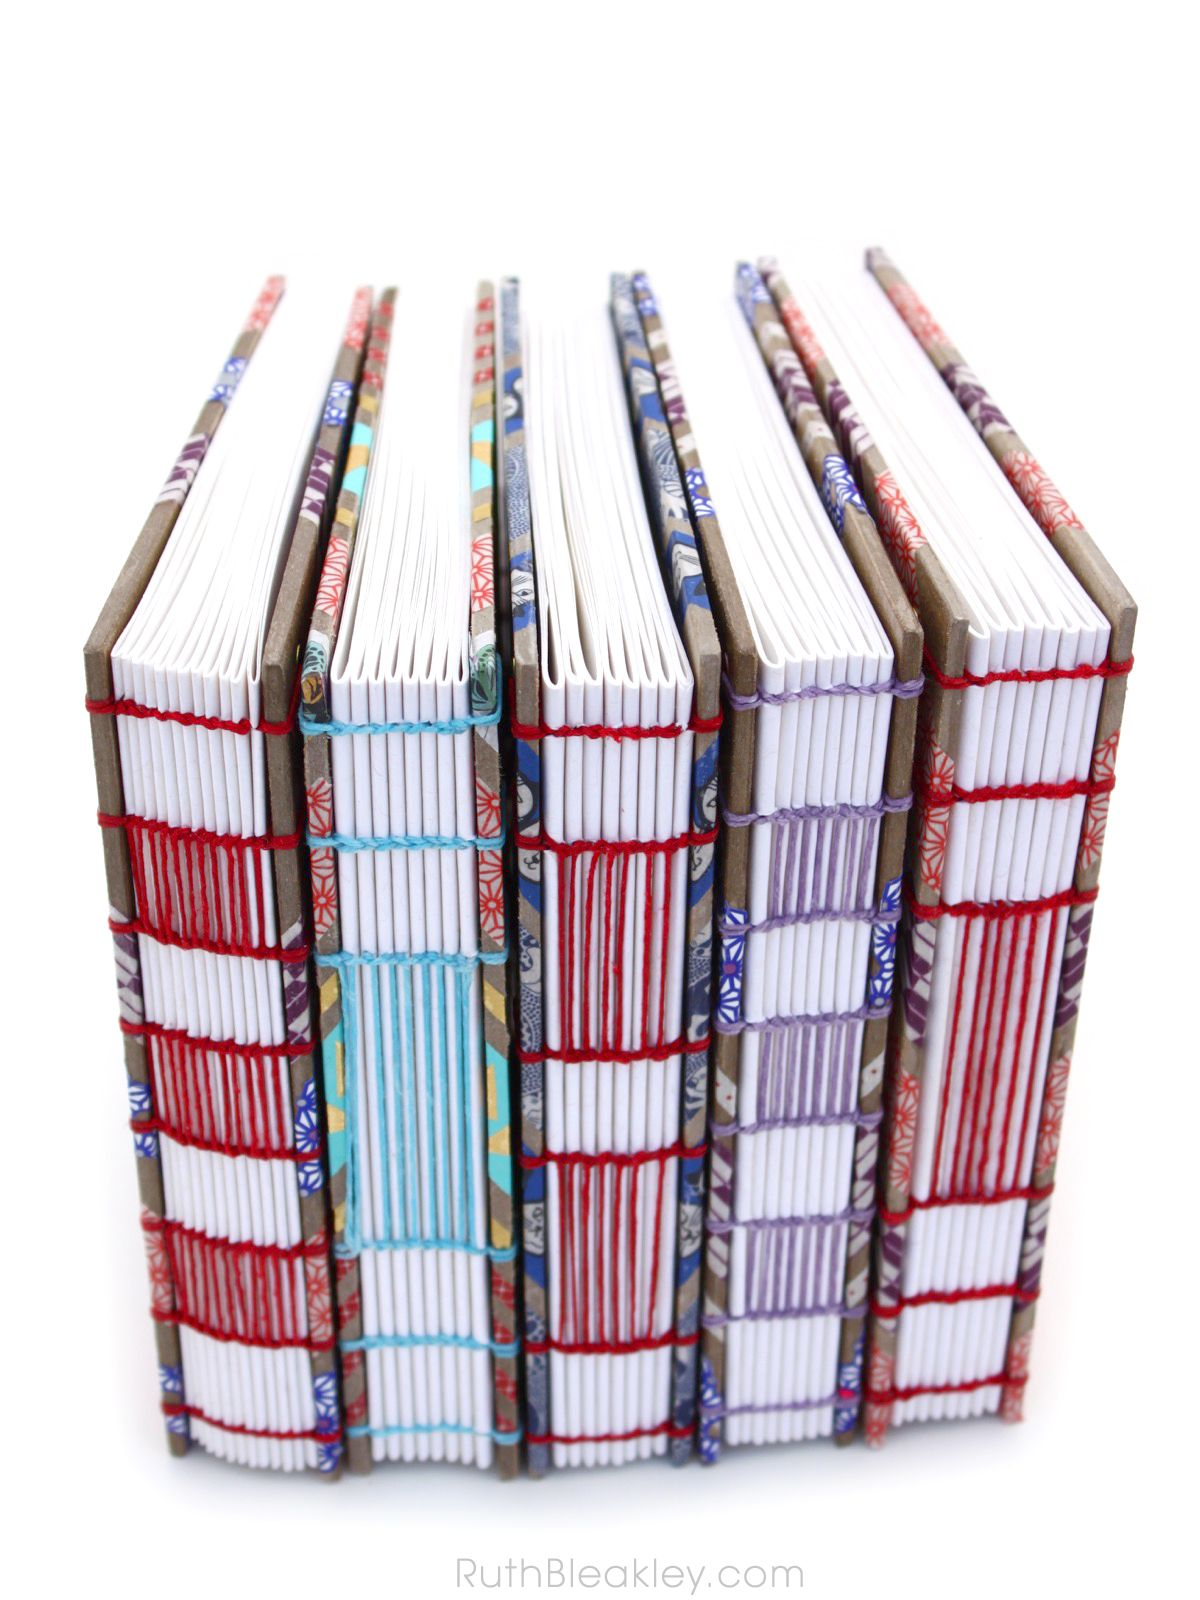 Washi Tape Journals With Ladder Coptic Stitch Handmade By Ruth Bleakley Bookbinding Journaling Washi Tape Journal Bookbinding Book Binding